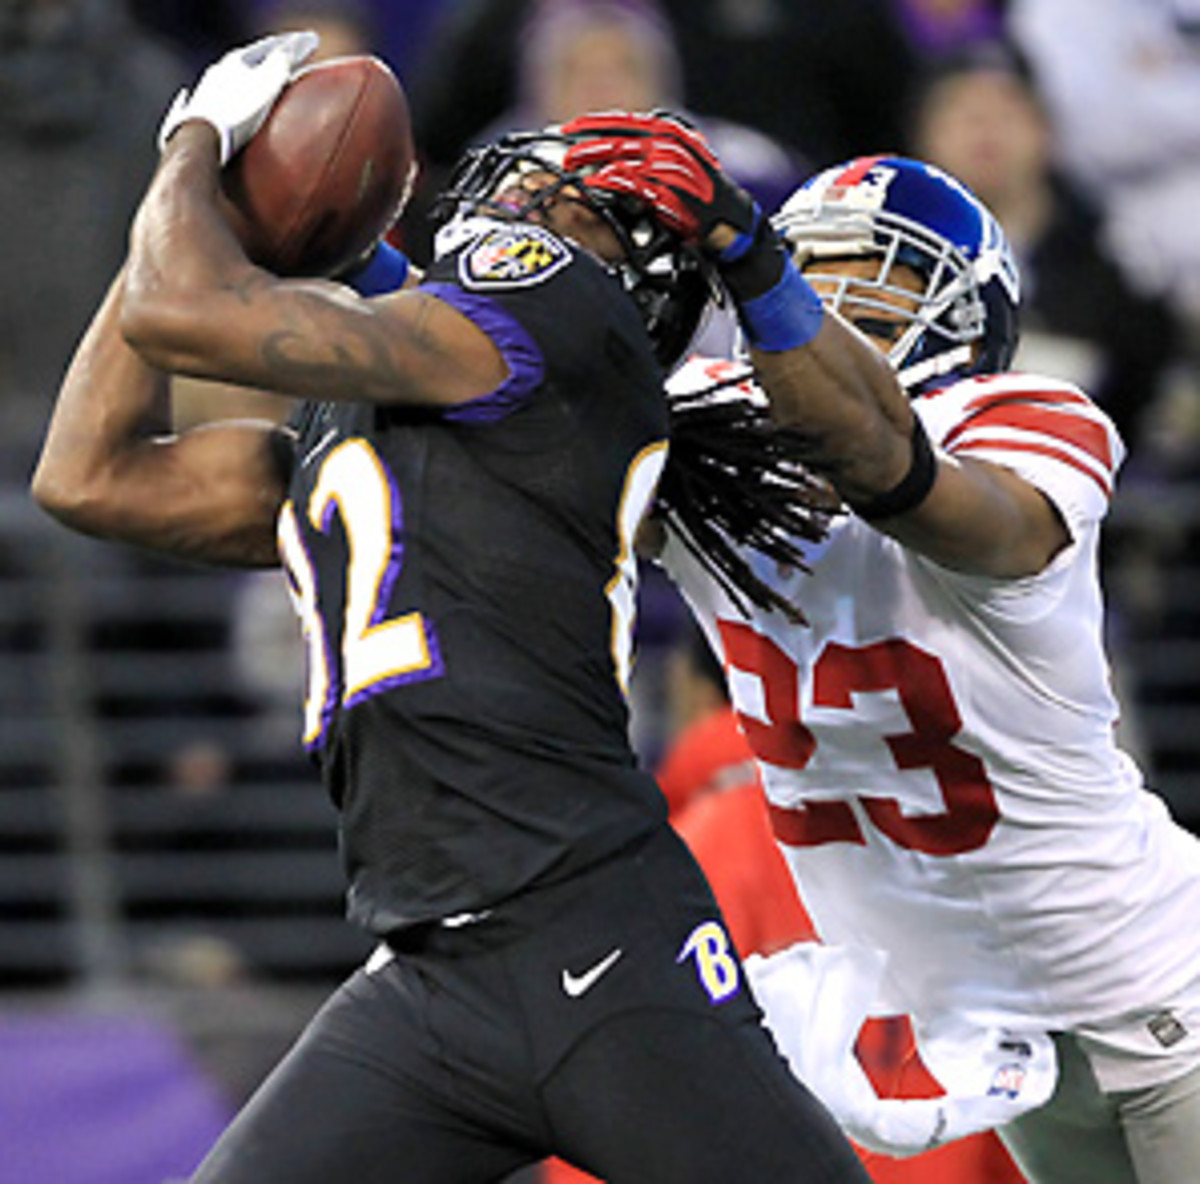 After catching a six-yard touchdown, Torrey Smith's 43-yard reception set the Ravens up for their second score of the day. (The Star-Ledger-USA TODAY Sports)